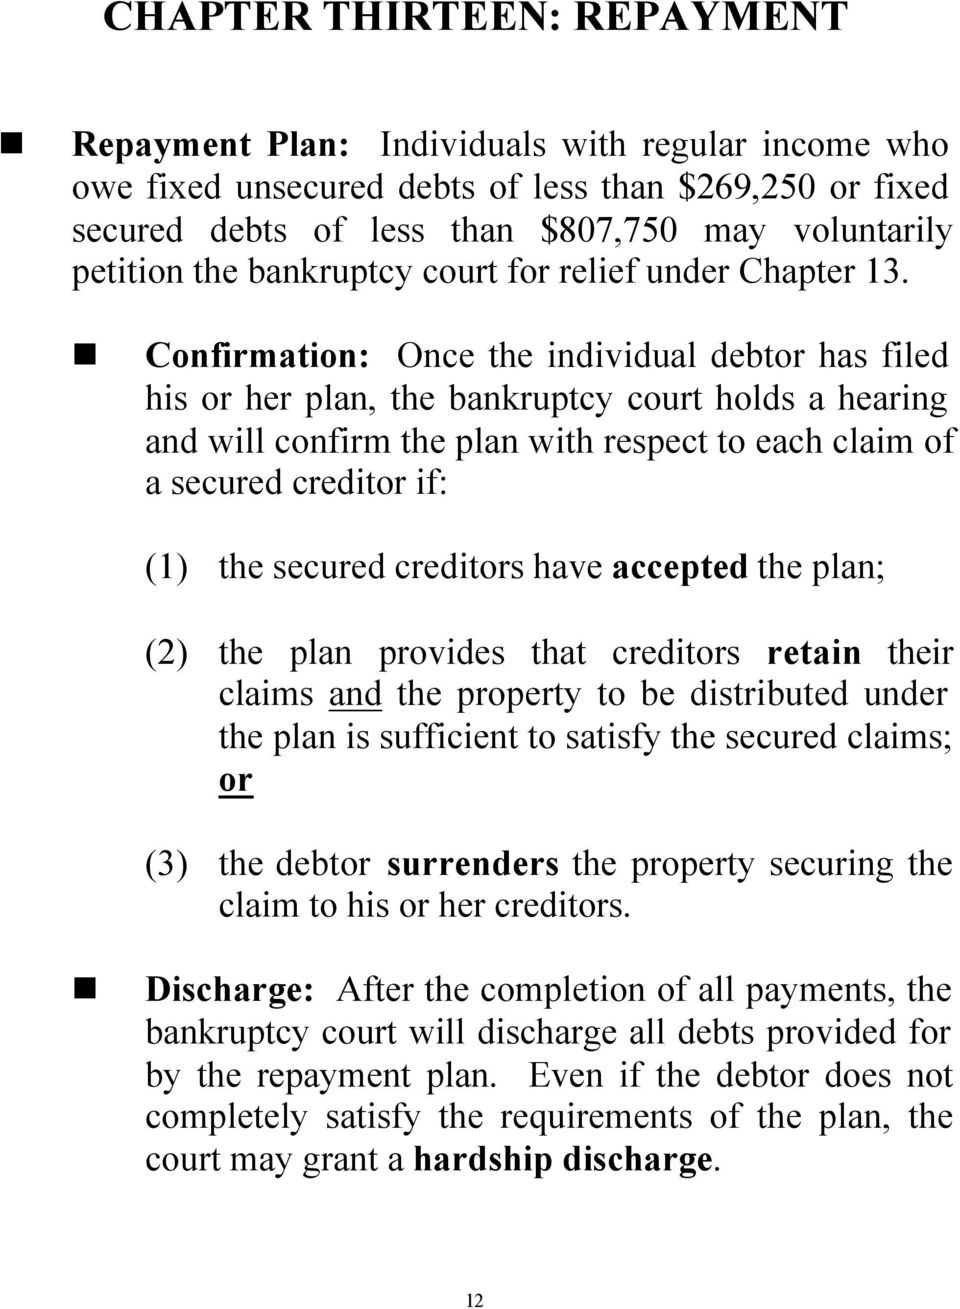 Confirmation: Once the individual debtor has filed his or her plan, the bankruptcy court holds a hearing and will confirm the plan with respect to each claim of a secured creditor if: (1) the secured